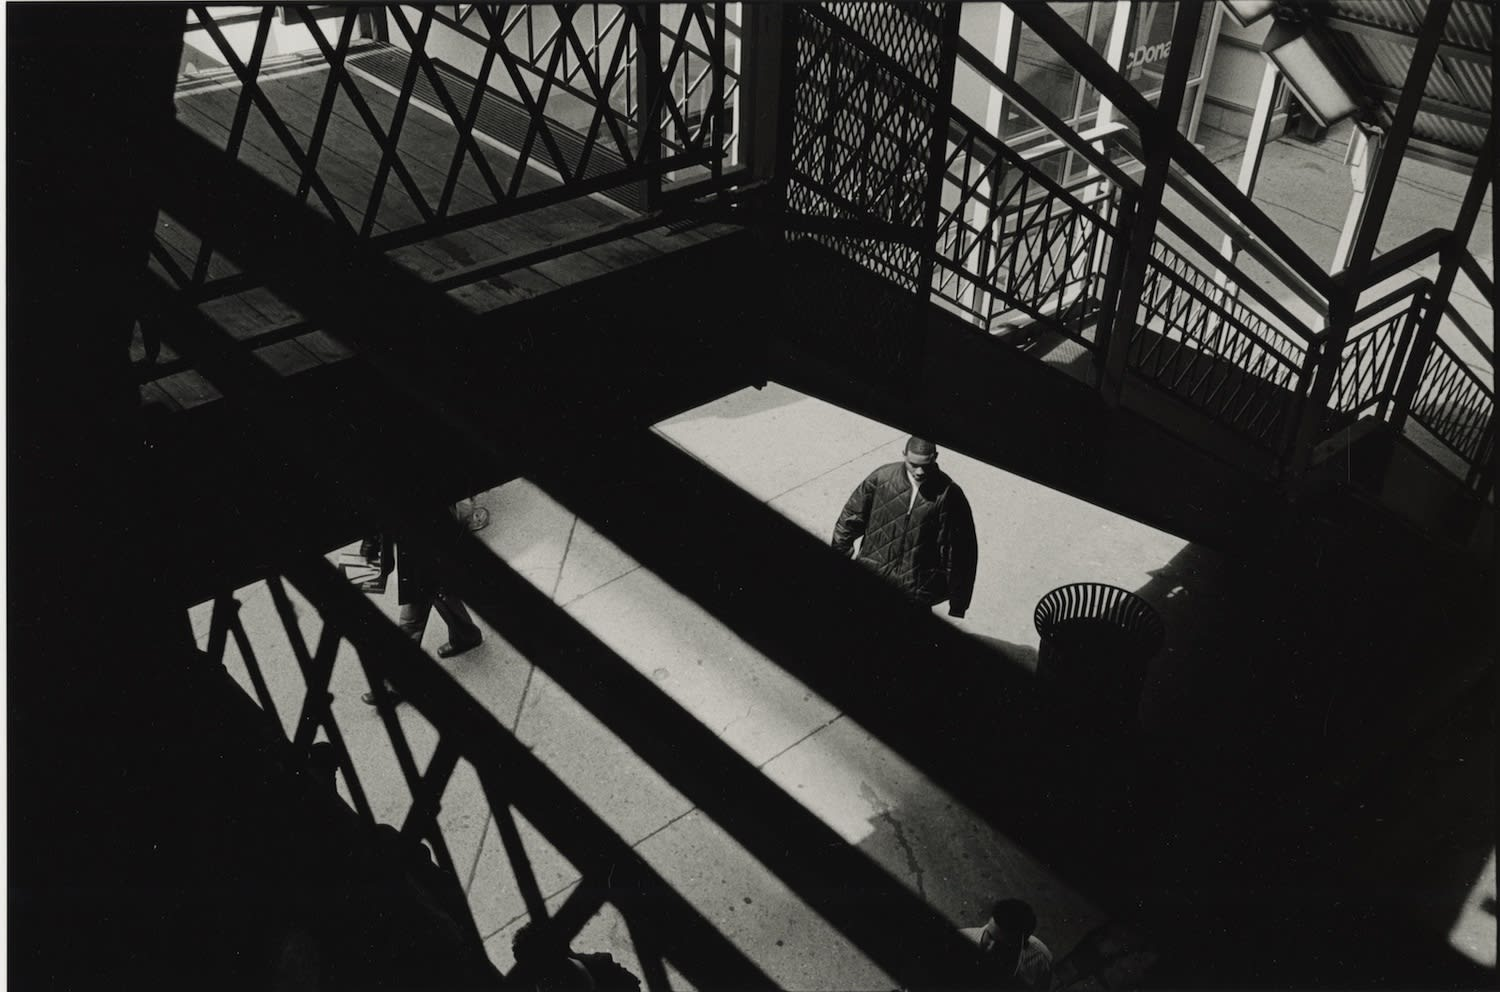 Tom Arndt, Man in a jacket, Looking down from L platform, Chicago, 2003